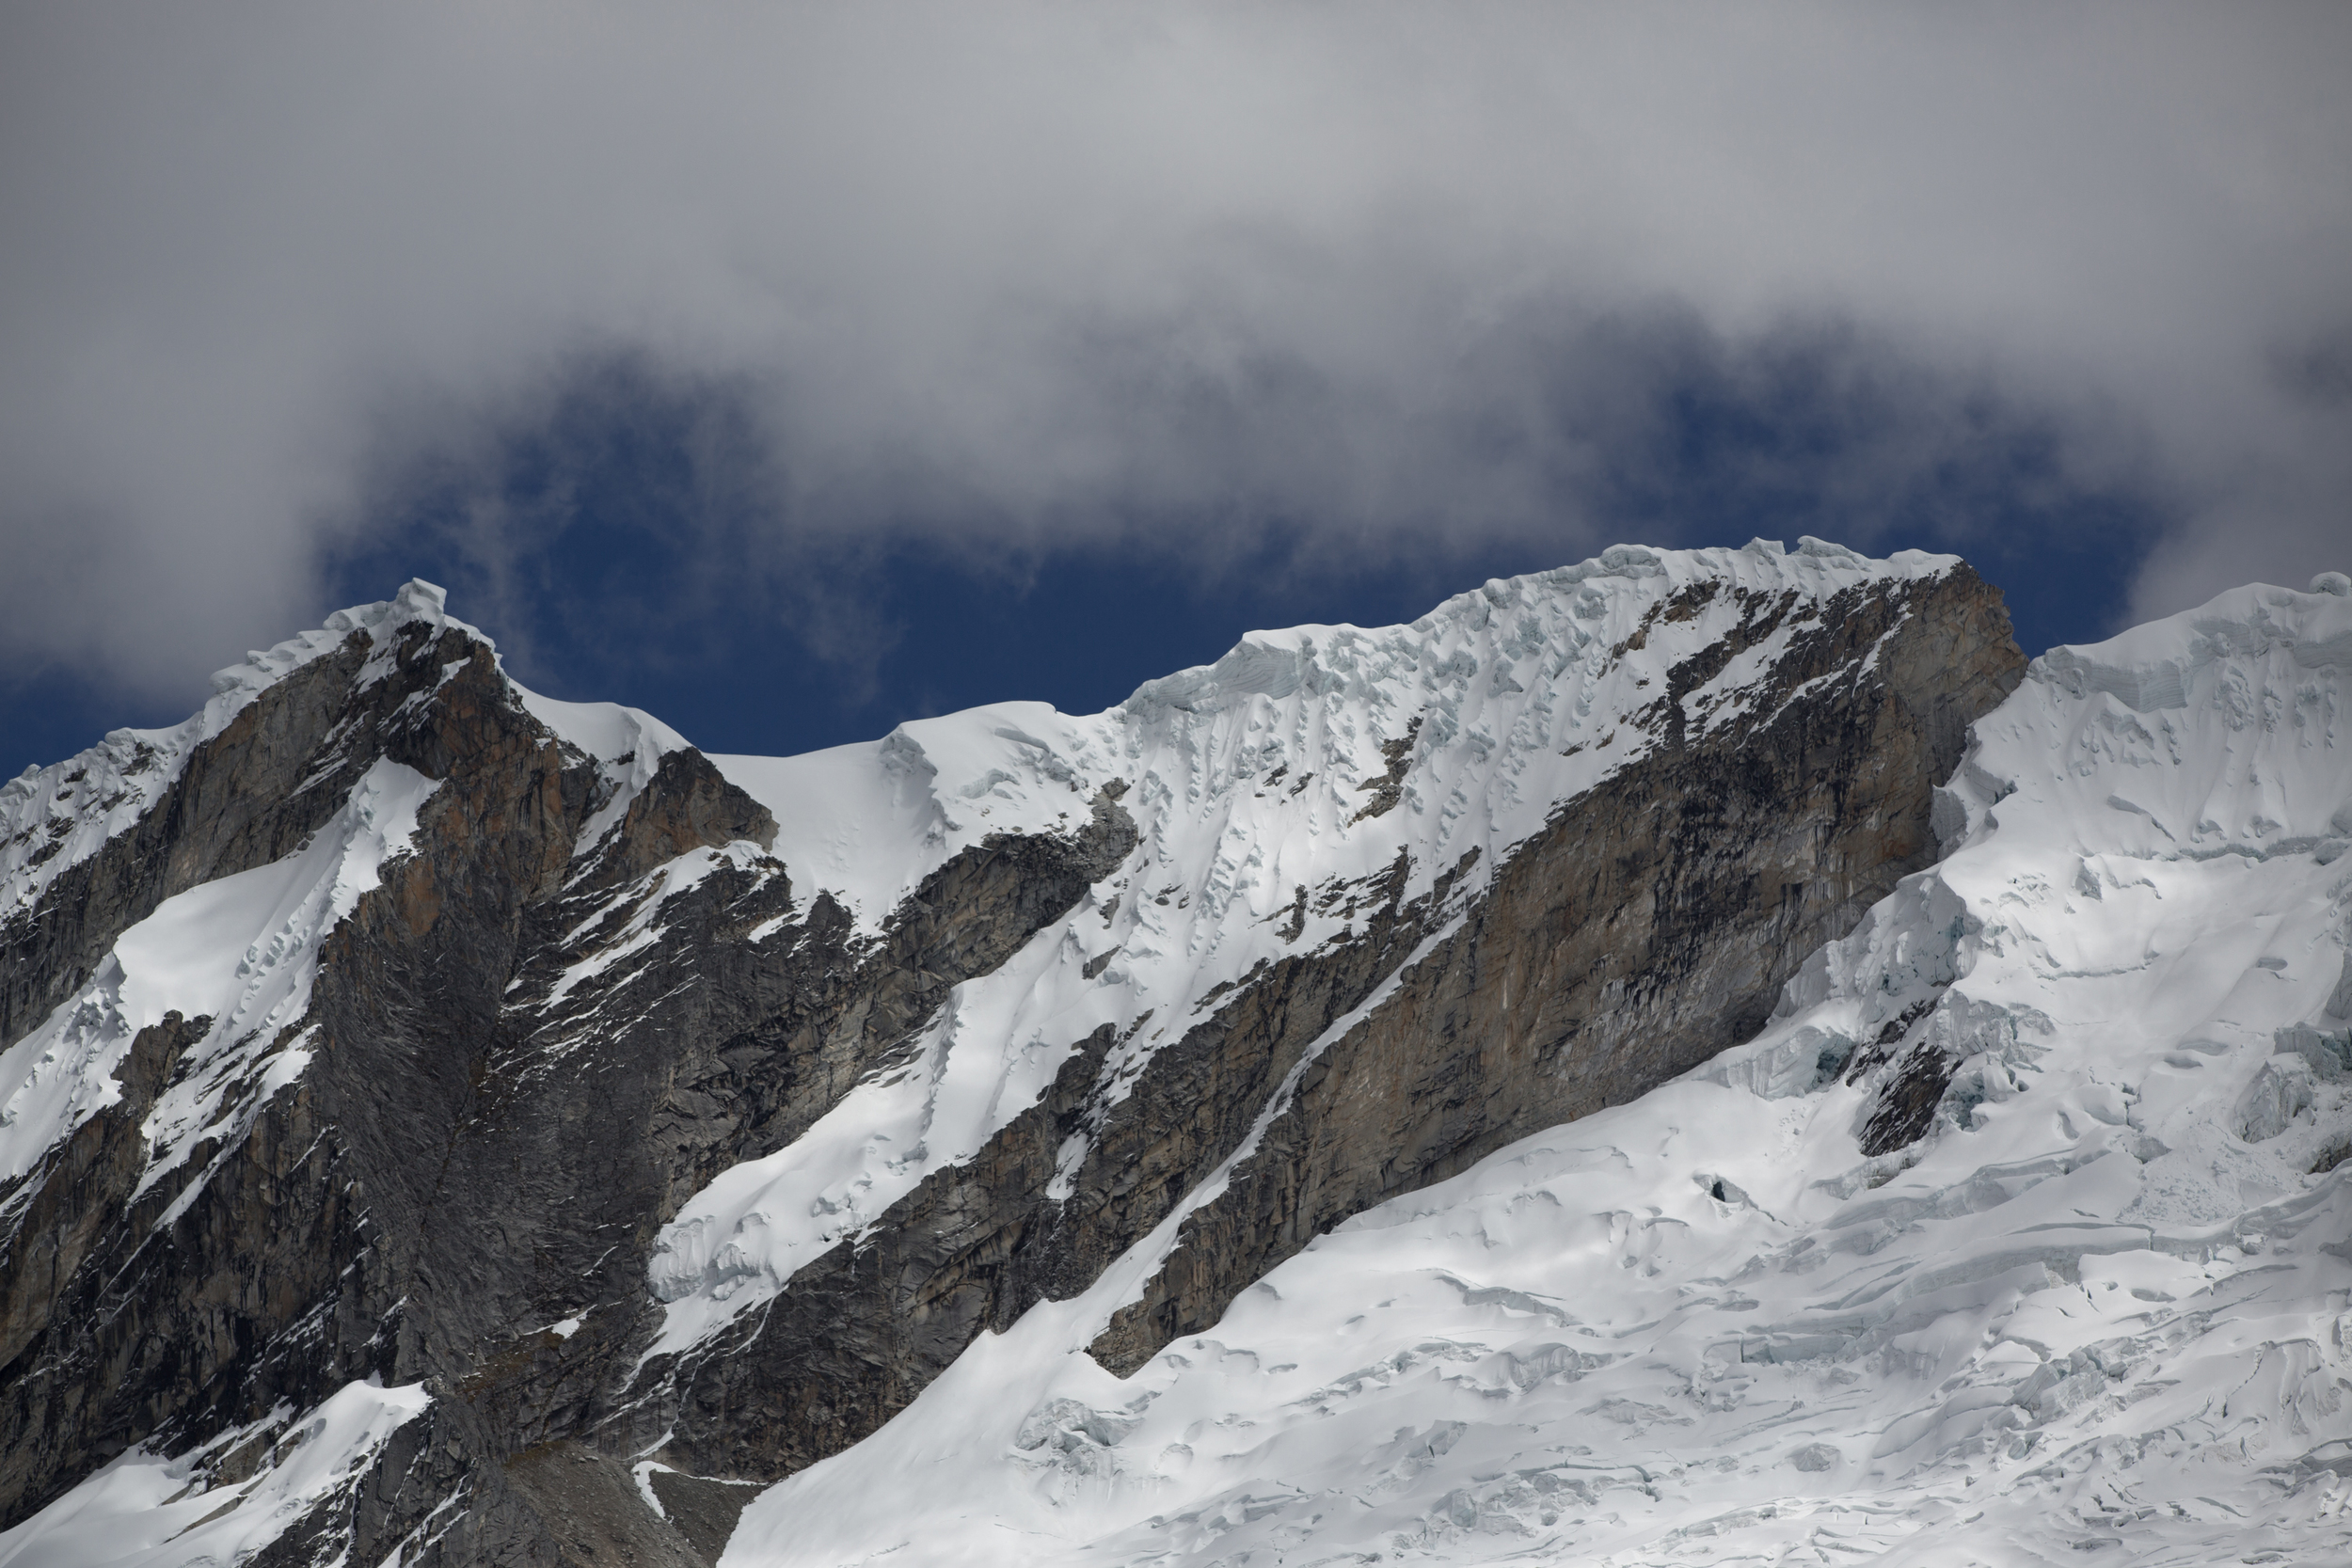 Clouds seen from Punta Union Pass (4730m)